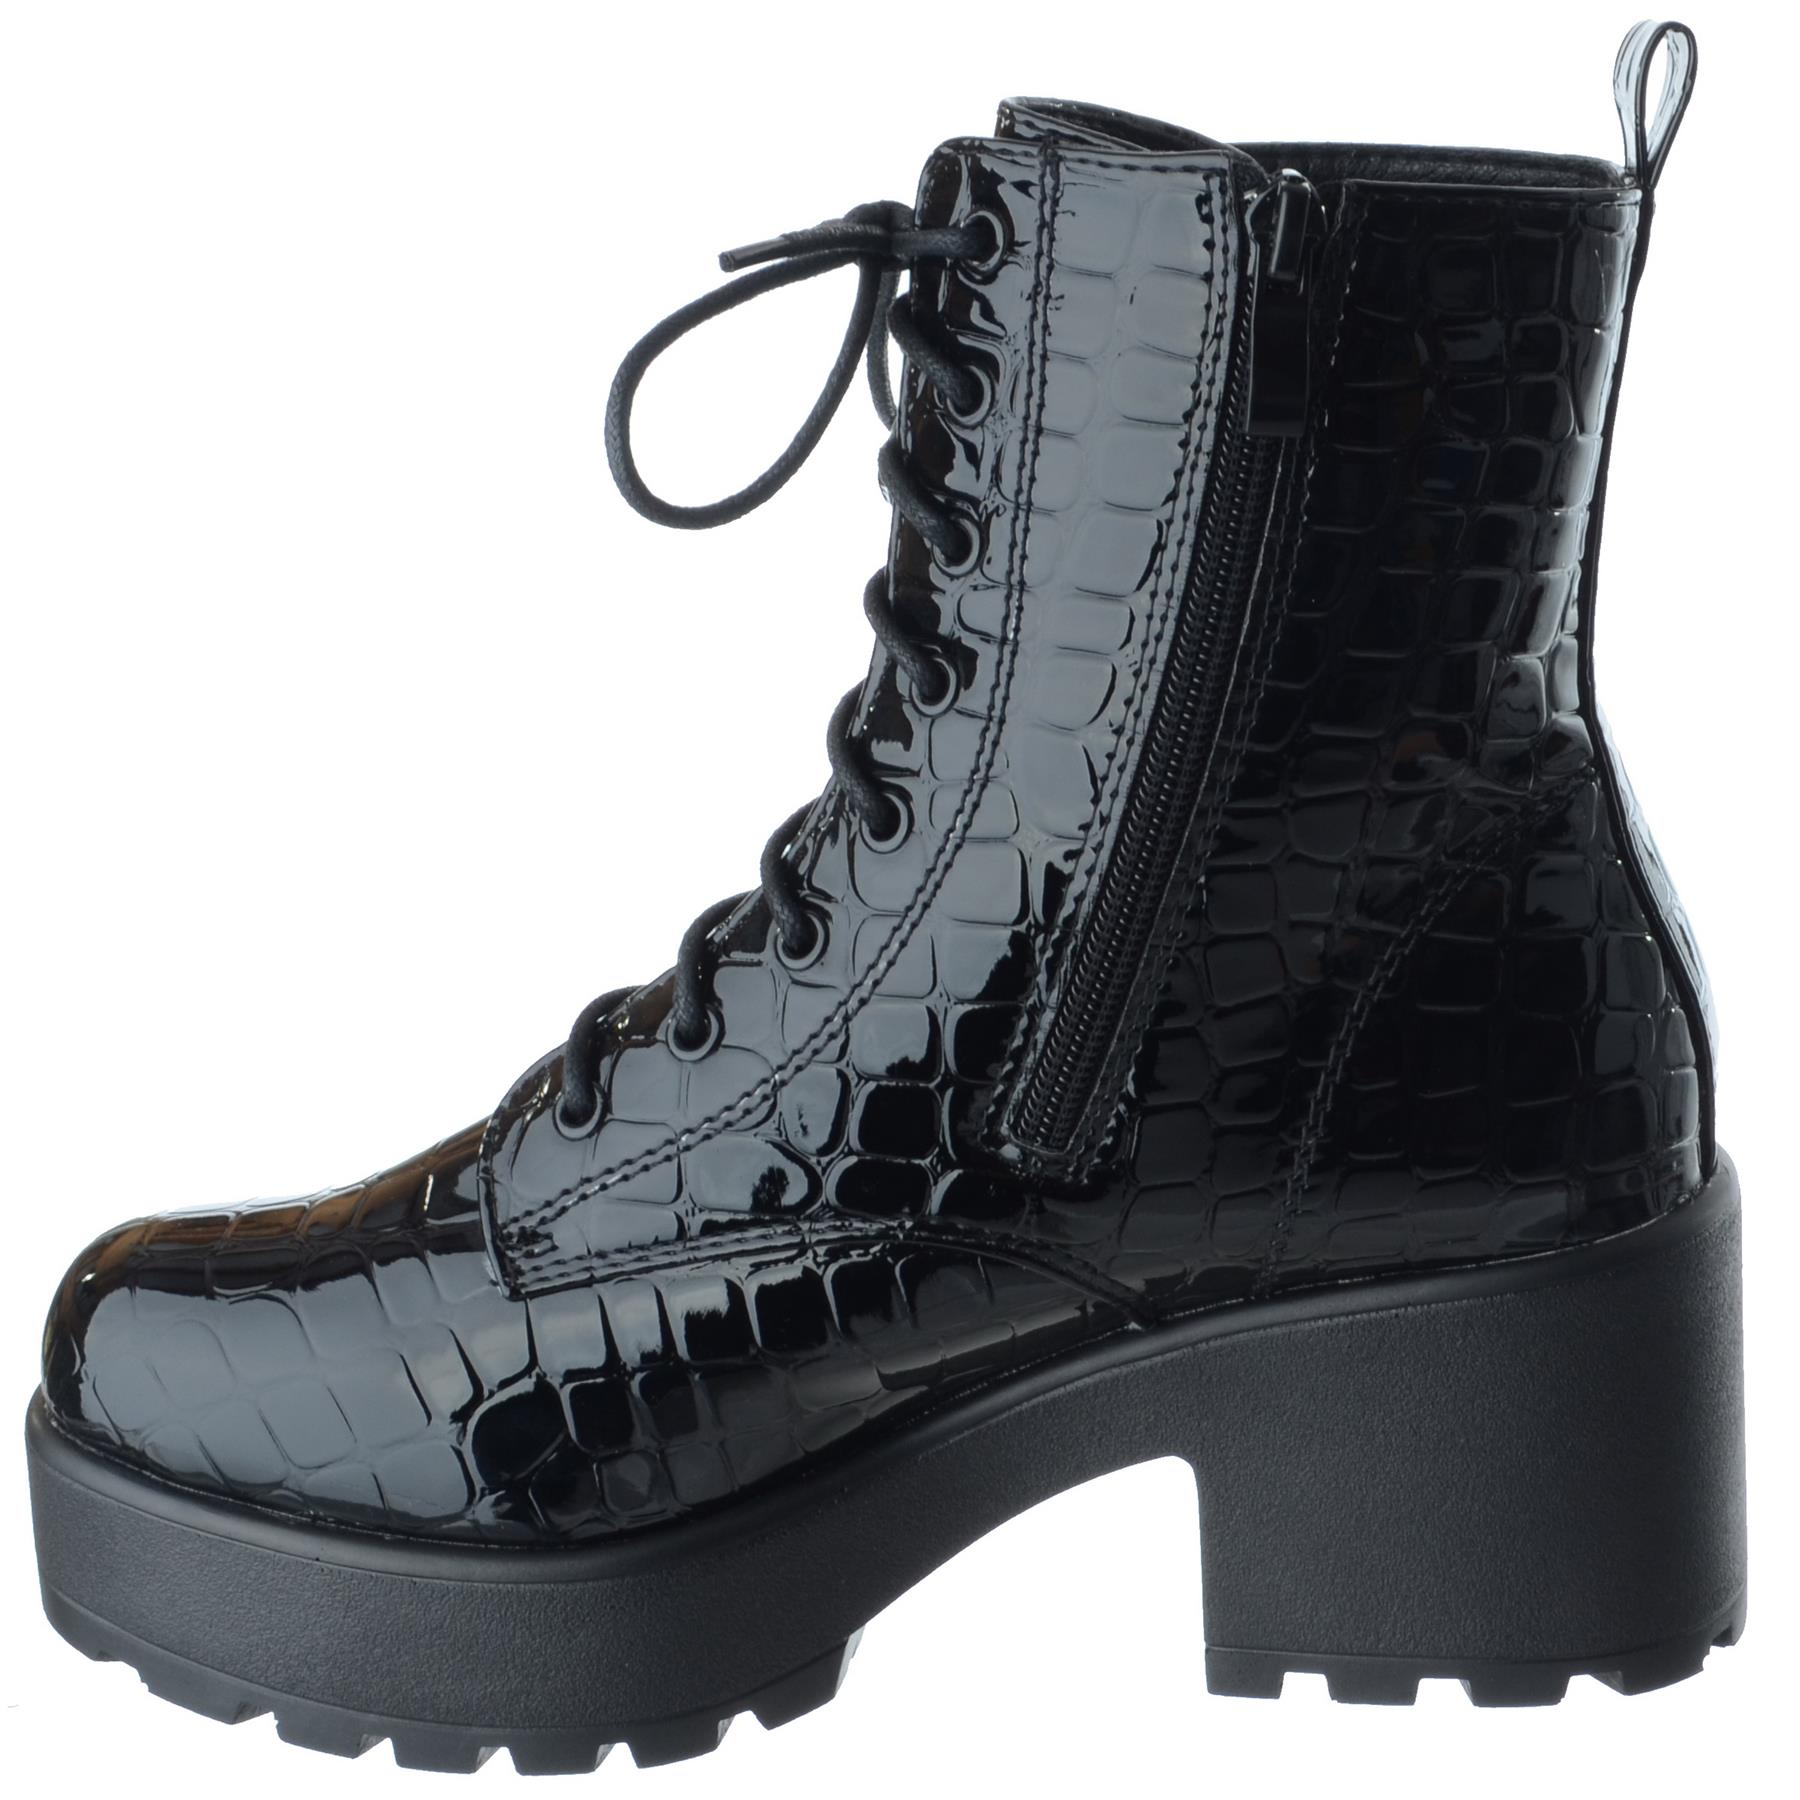 WOMENS LADIES CHUNKY ARMY COMBAT PLATFORM LACE ZIP UP PLATFORM ANKLE BOOTS SHOES